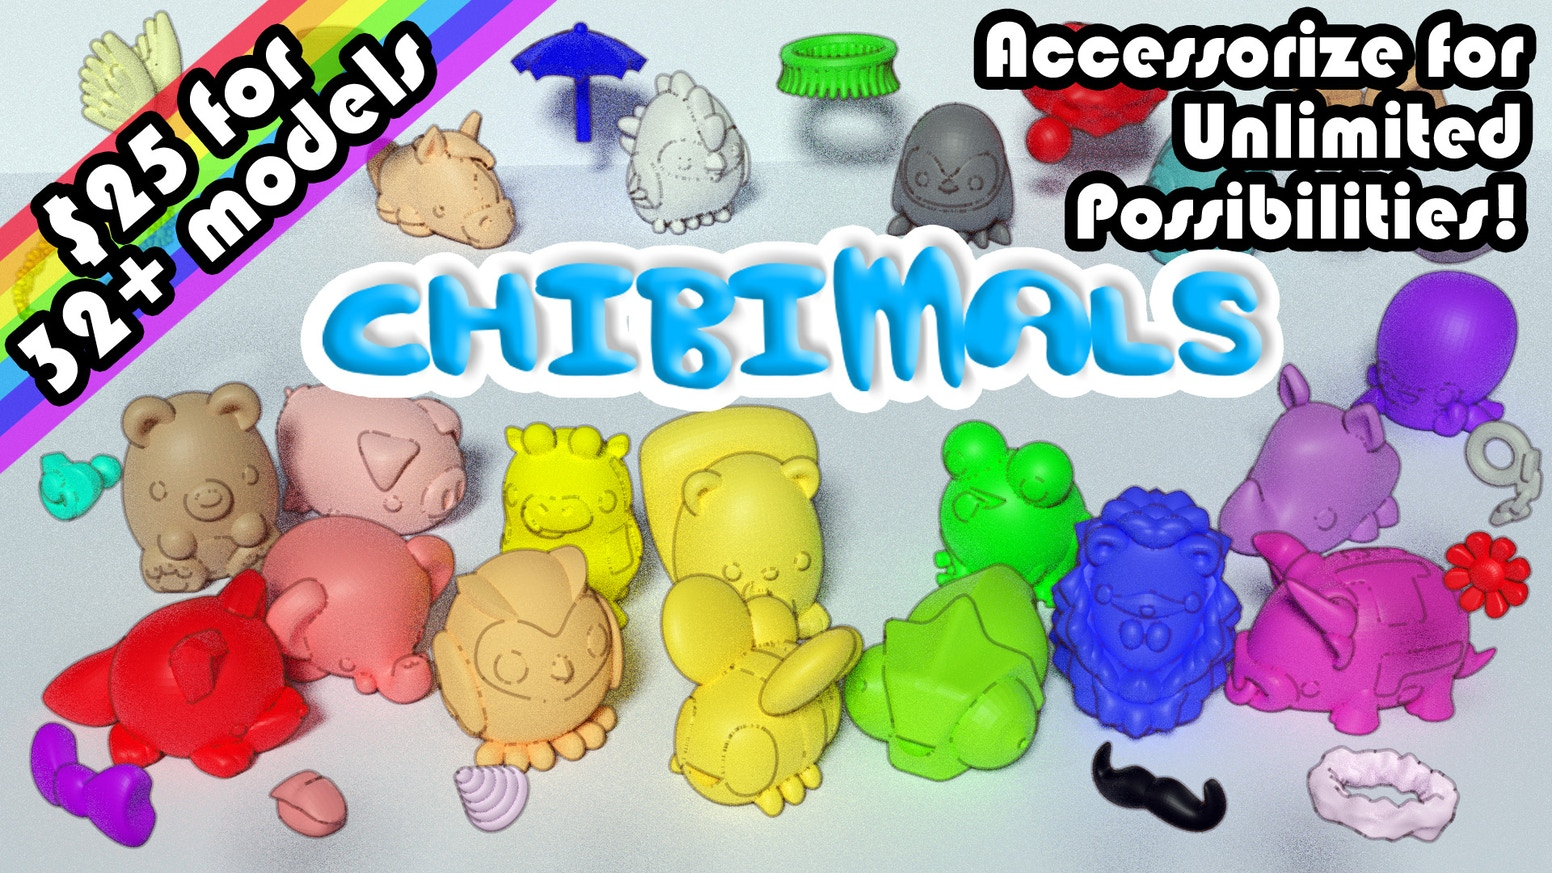 A library of Chibi Animals for your 3D printer!